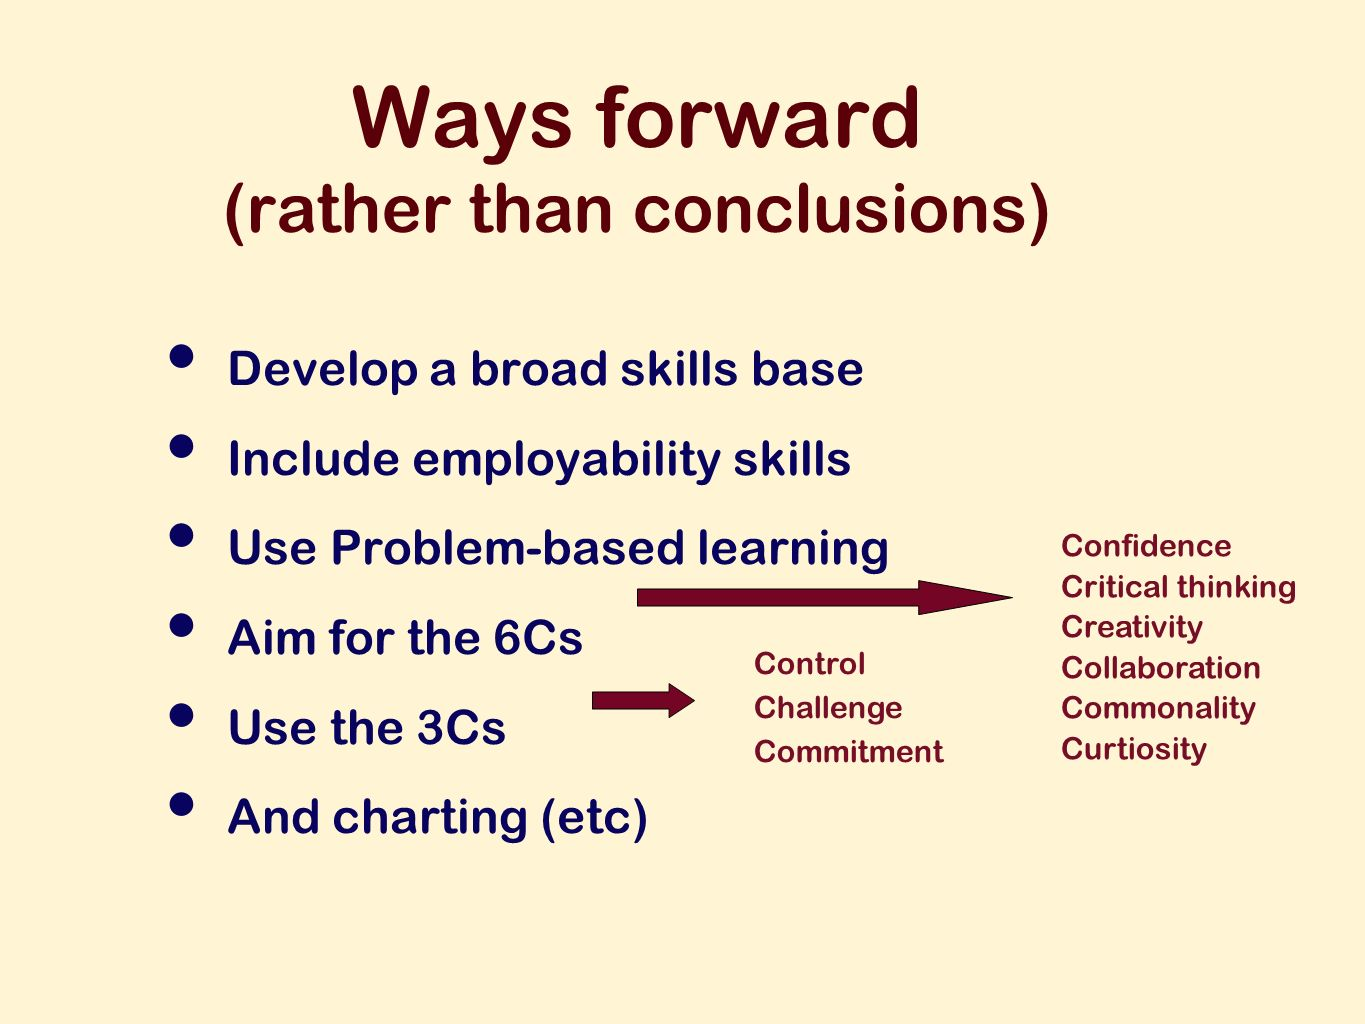 Ways forward (rather than conclusions) Develop a broad skills base Include employability skills Use Problem-based learning Aim for the 6Cs Use the 3Cs And charting (etc) Confidence Critical thinking Creativity Collaboration Commonality Curtiosity Control Challenge Commitment